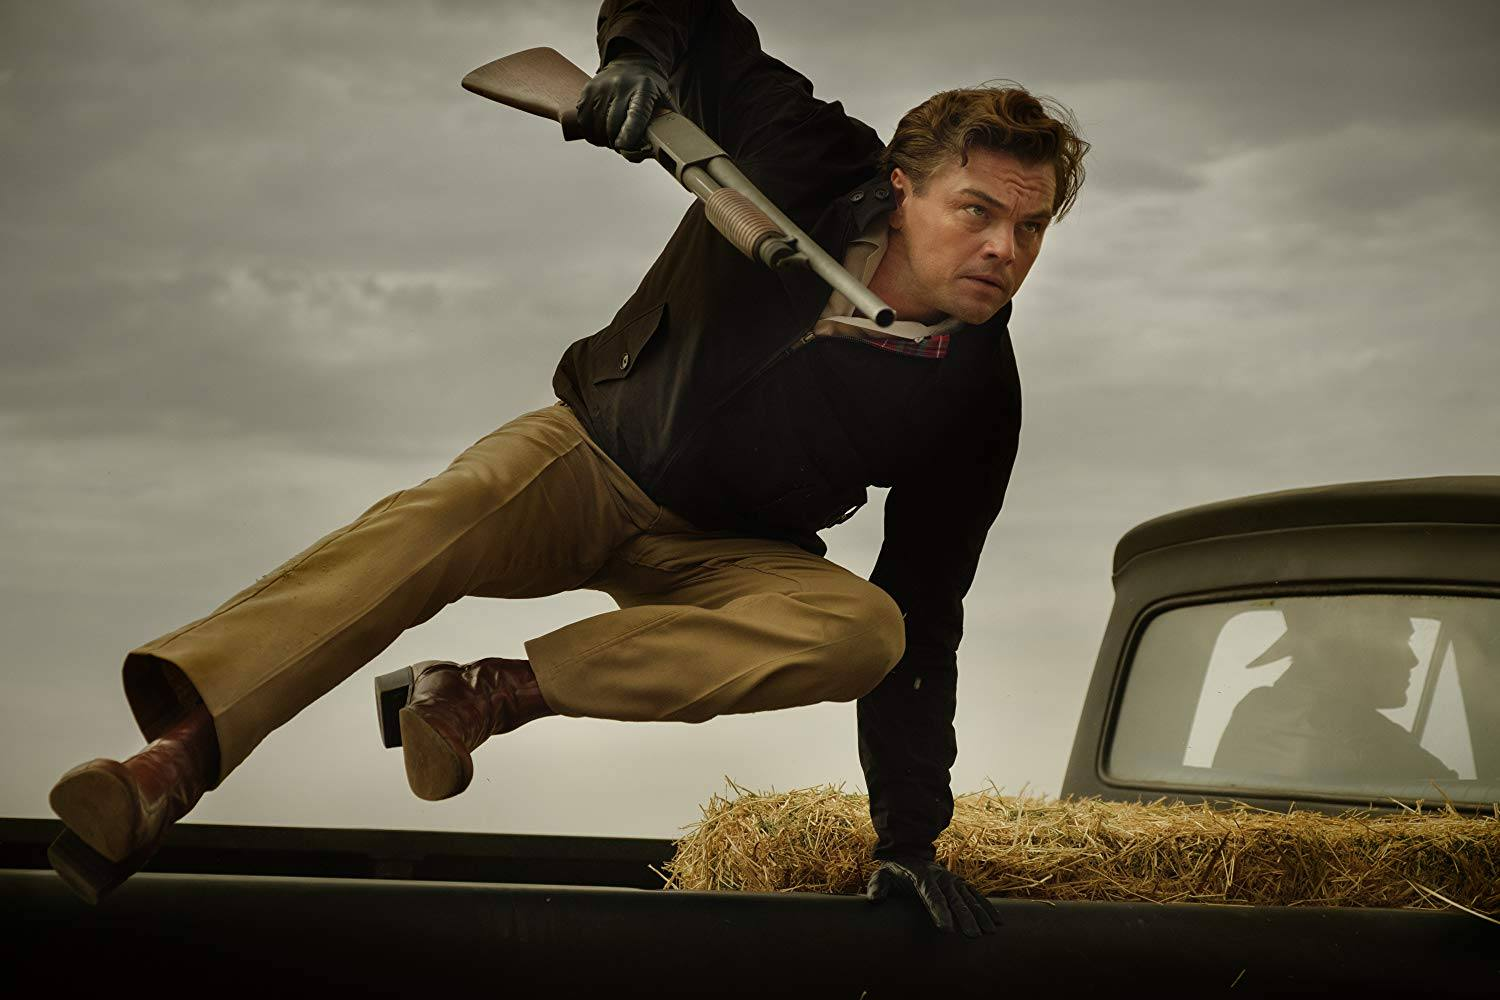 Rick Dalton (Leonardo DiCaprio) | Once Upon a Time in Hollywood